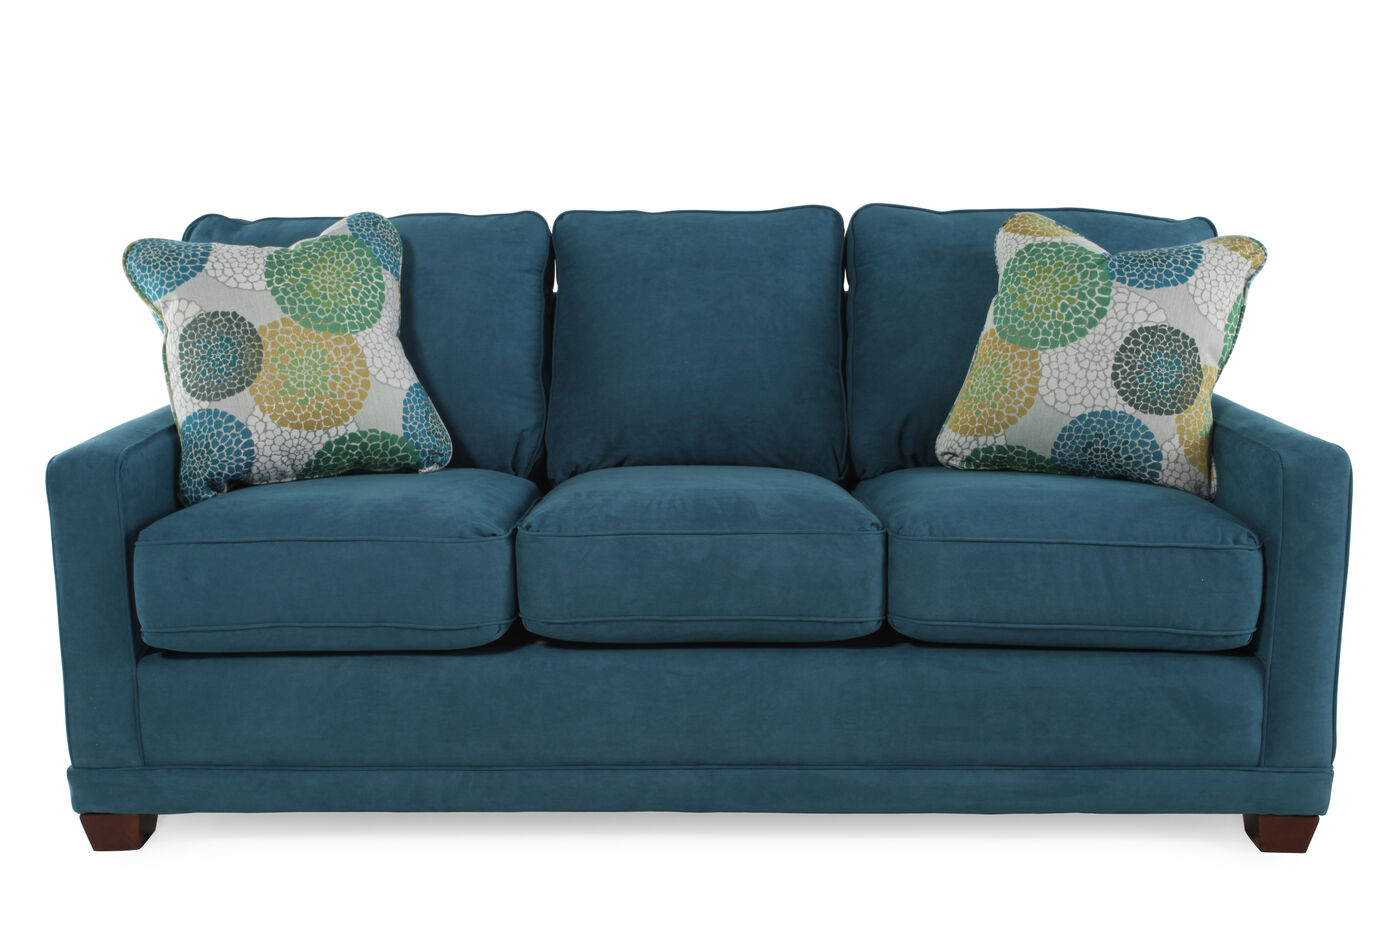 Kennedy sofa lazy boy kennedy sectional sofa town country for La z boy sectional sofas